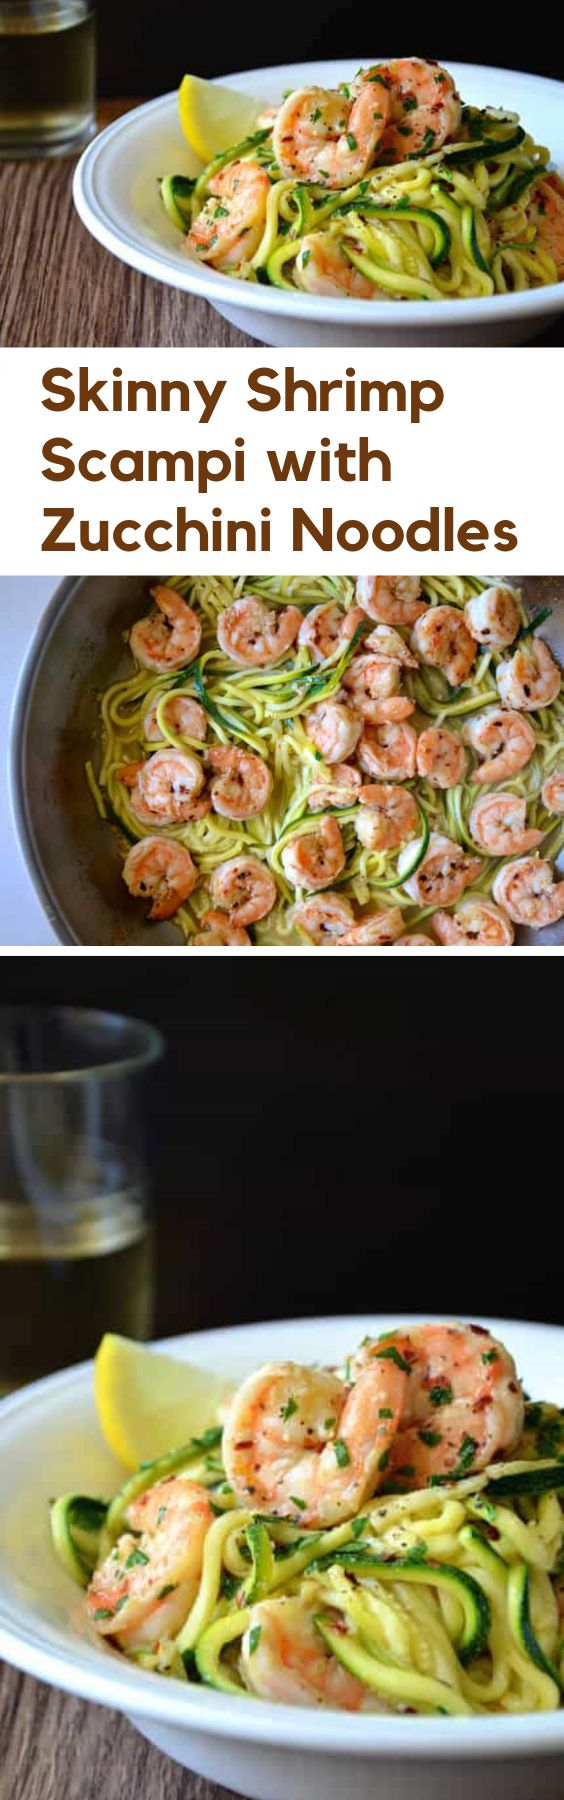 Skinny Shrimp Scampi with Zucchini Noodle